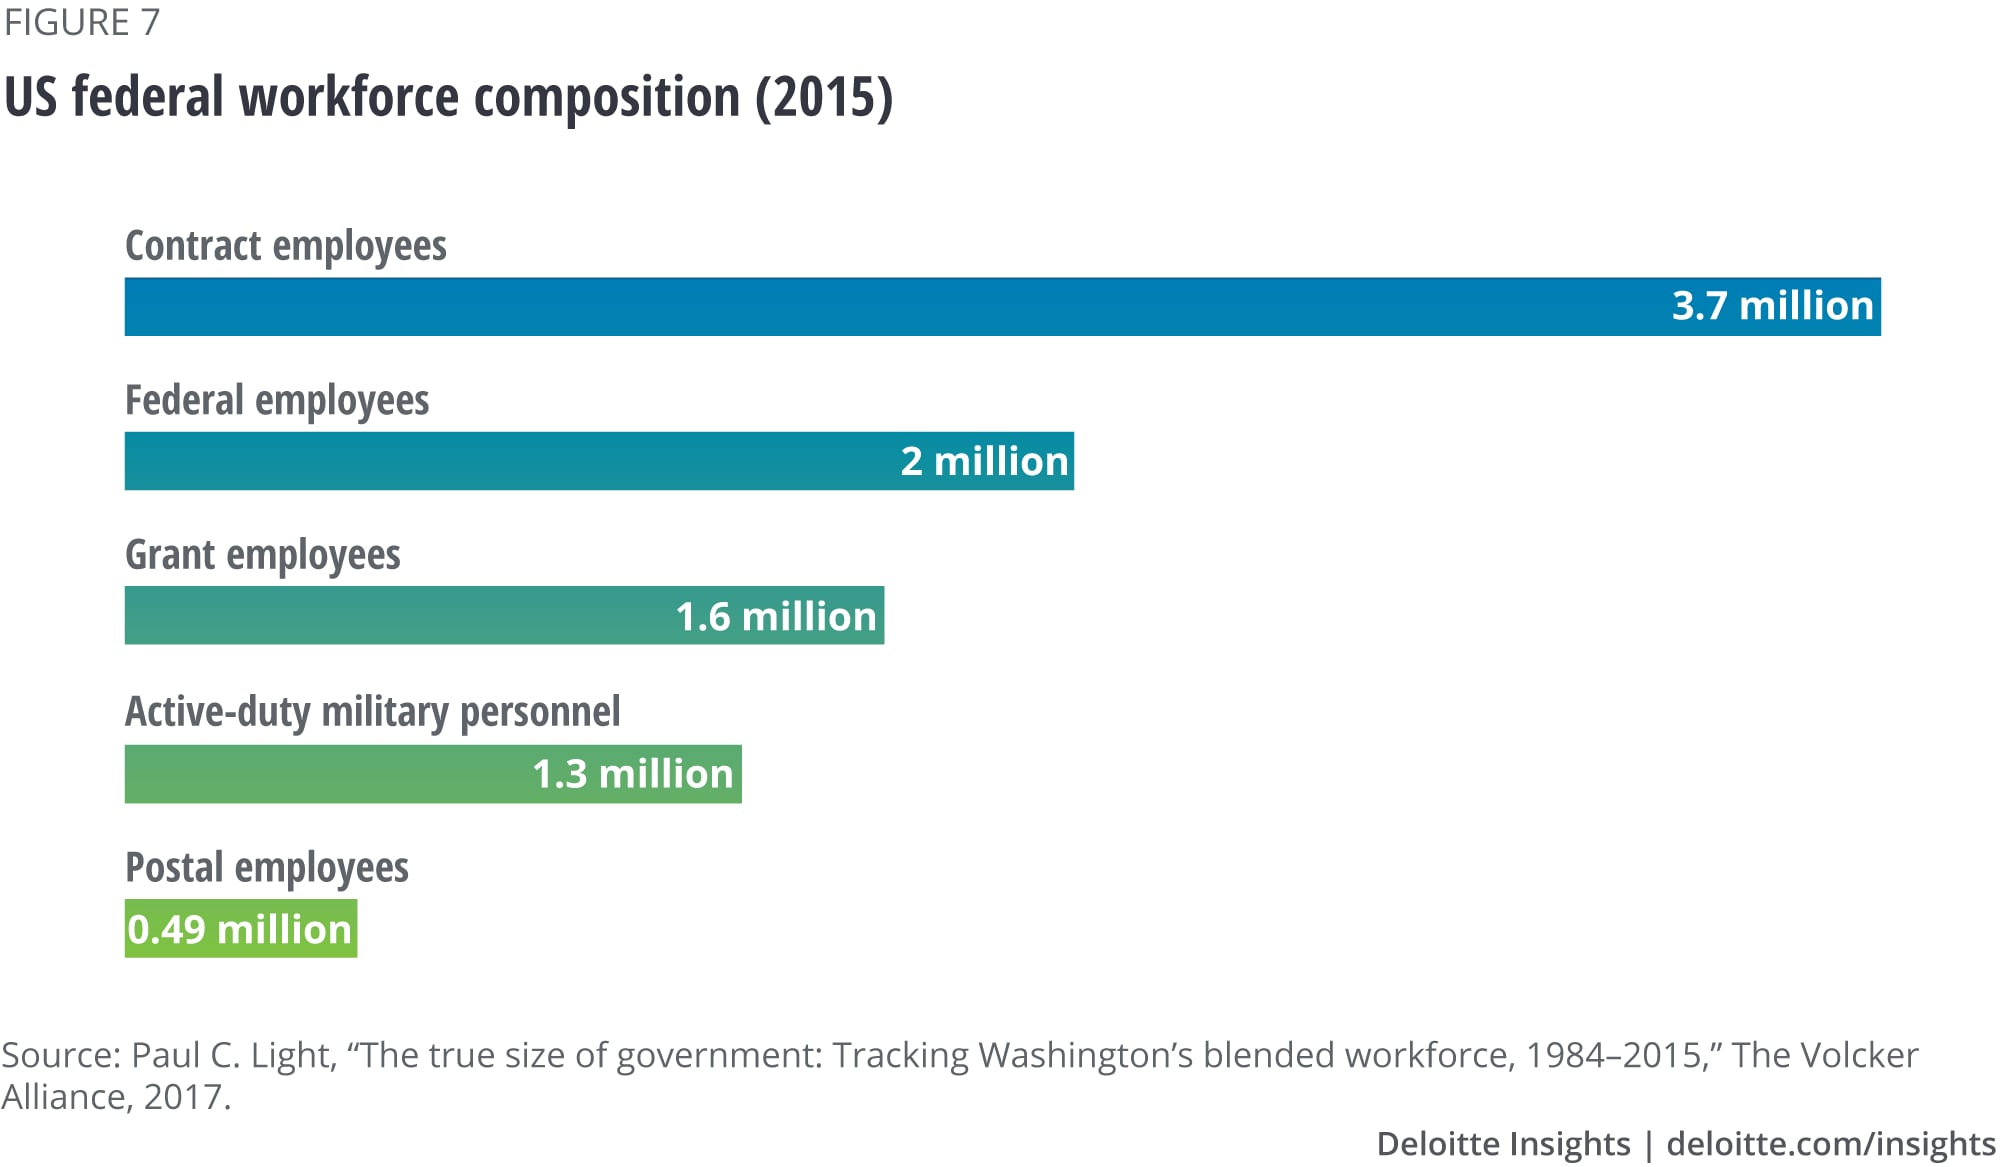 US federal workforce composition (2015)